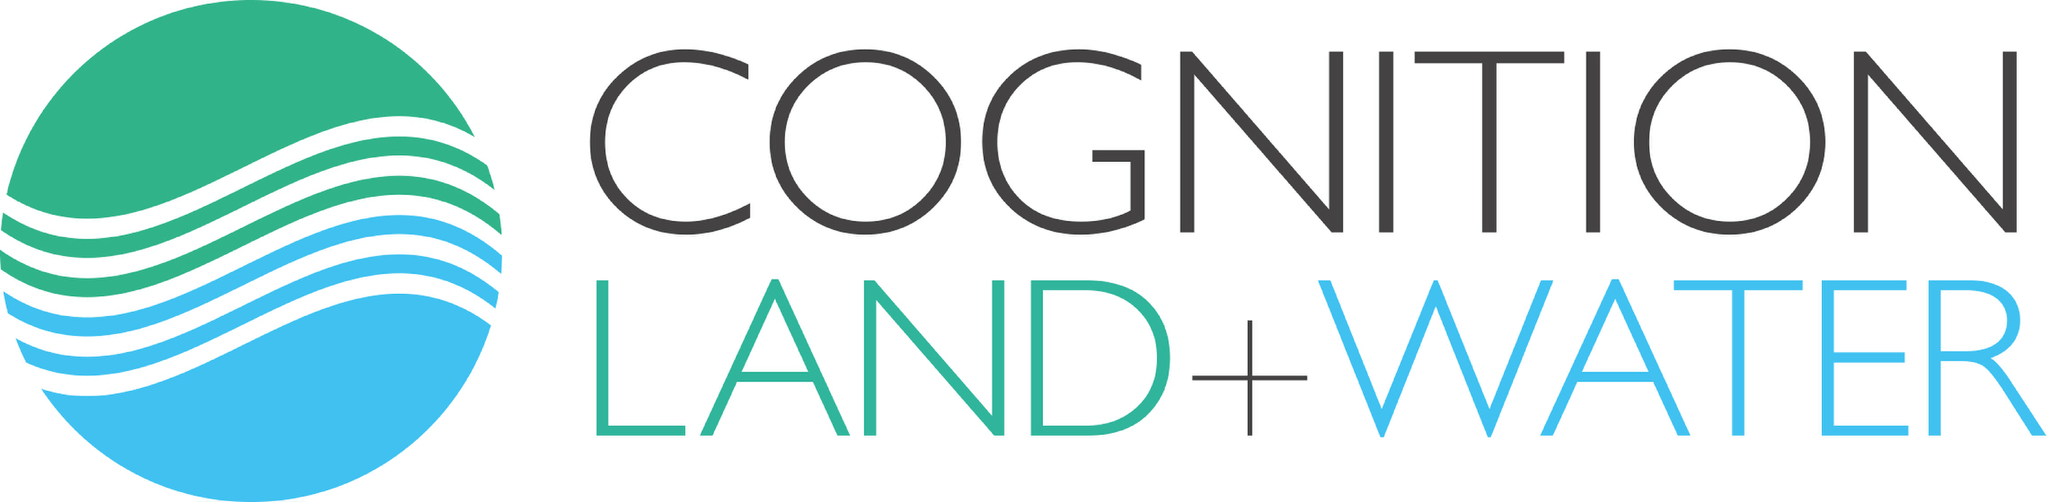 Cognition Land and Water Limited